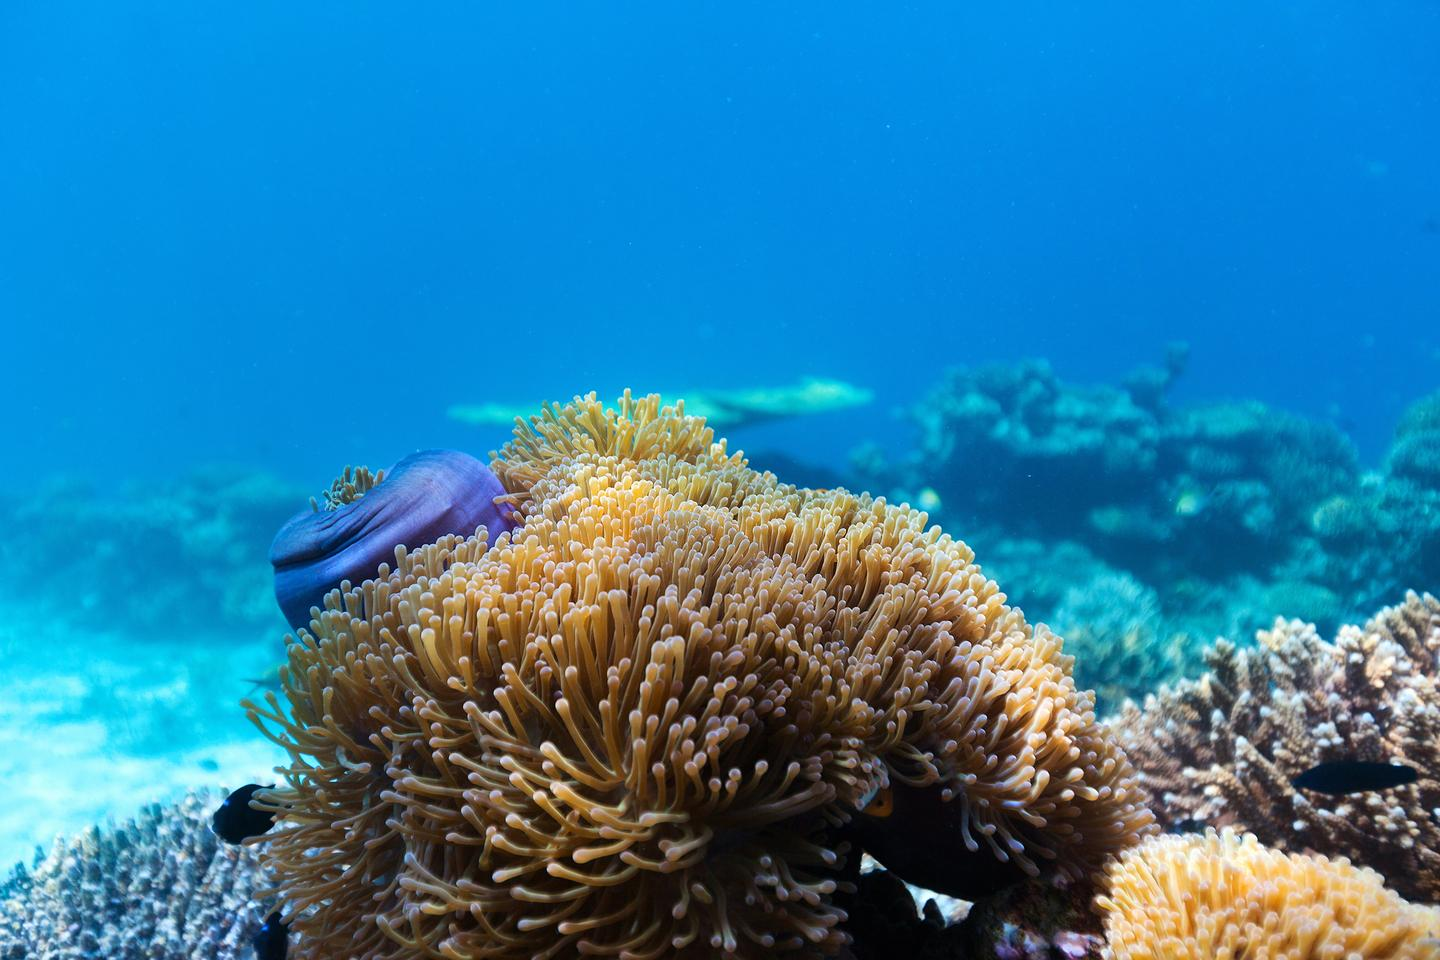 Coral rely on a symbiotic relationship with algae for sustenance and color